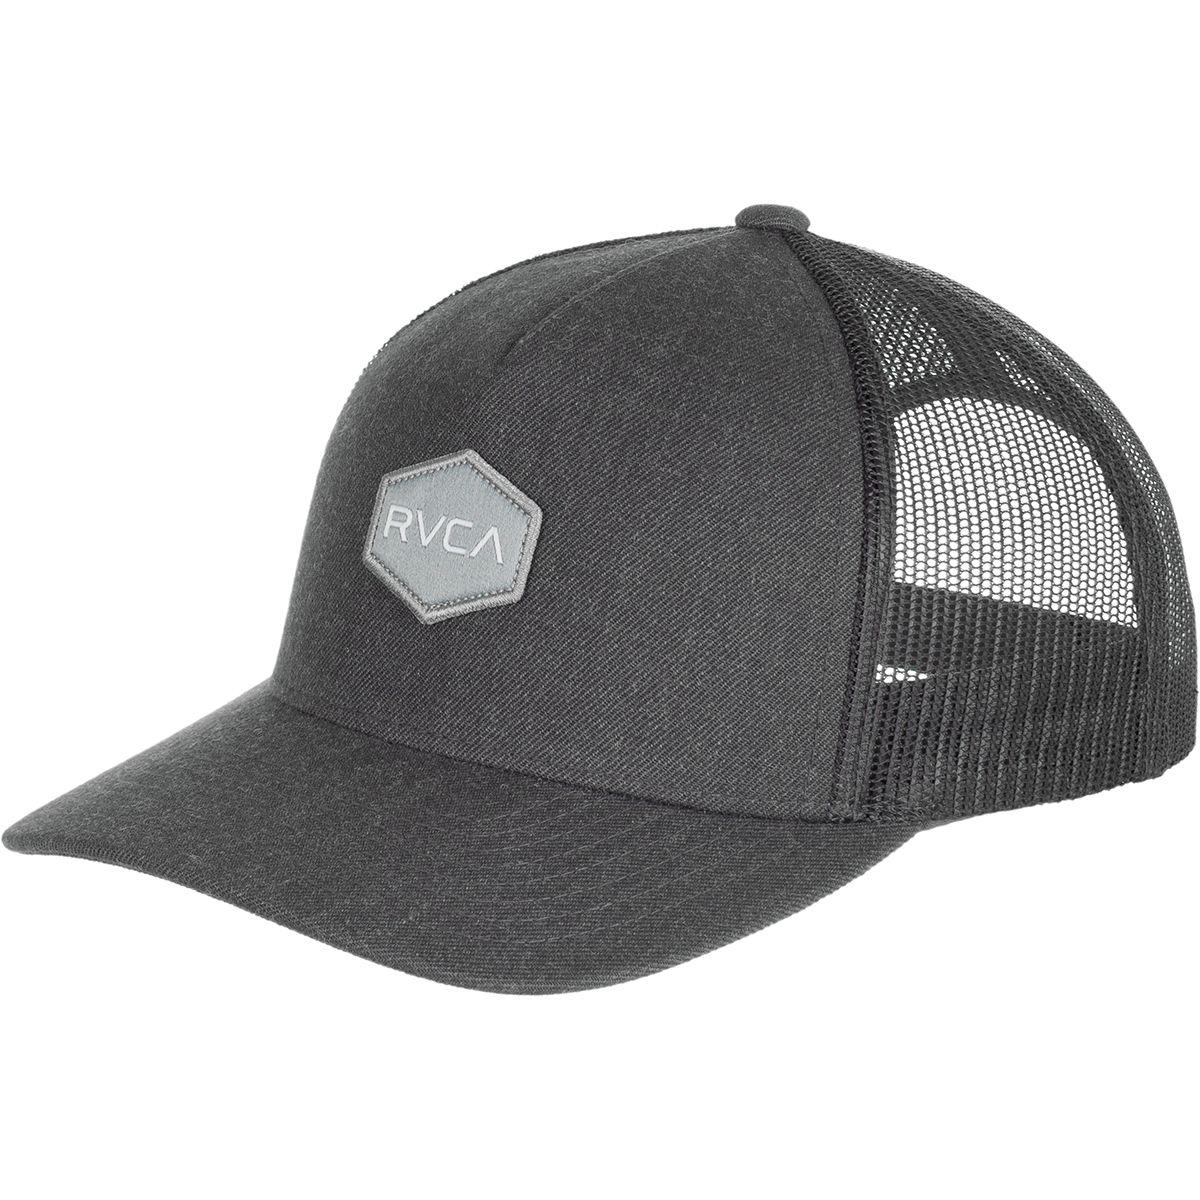 c854e1e6 inexpensive lyst rvca commonwealth trucker hat in gray for men a36a9 20d5d